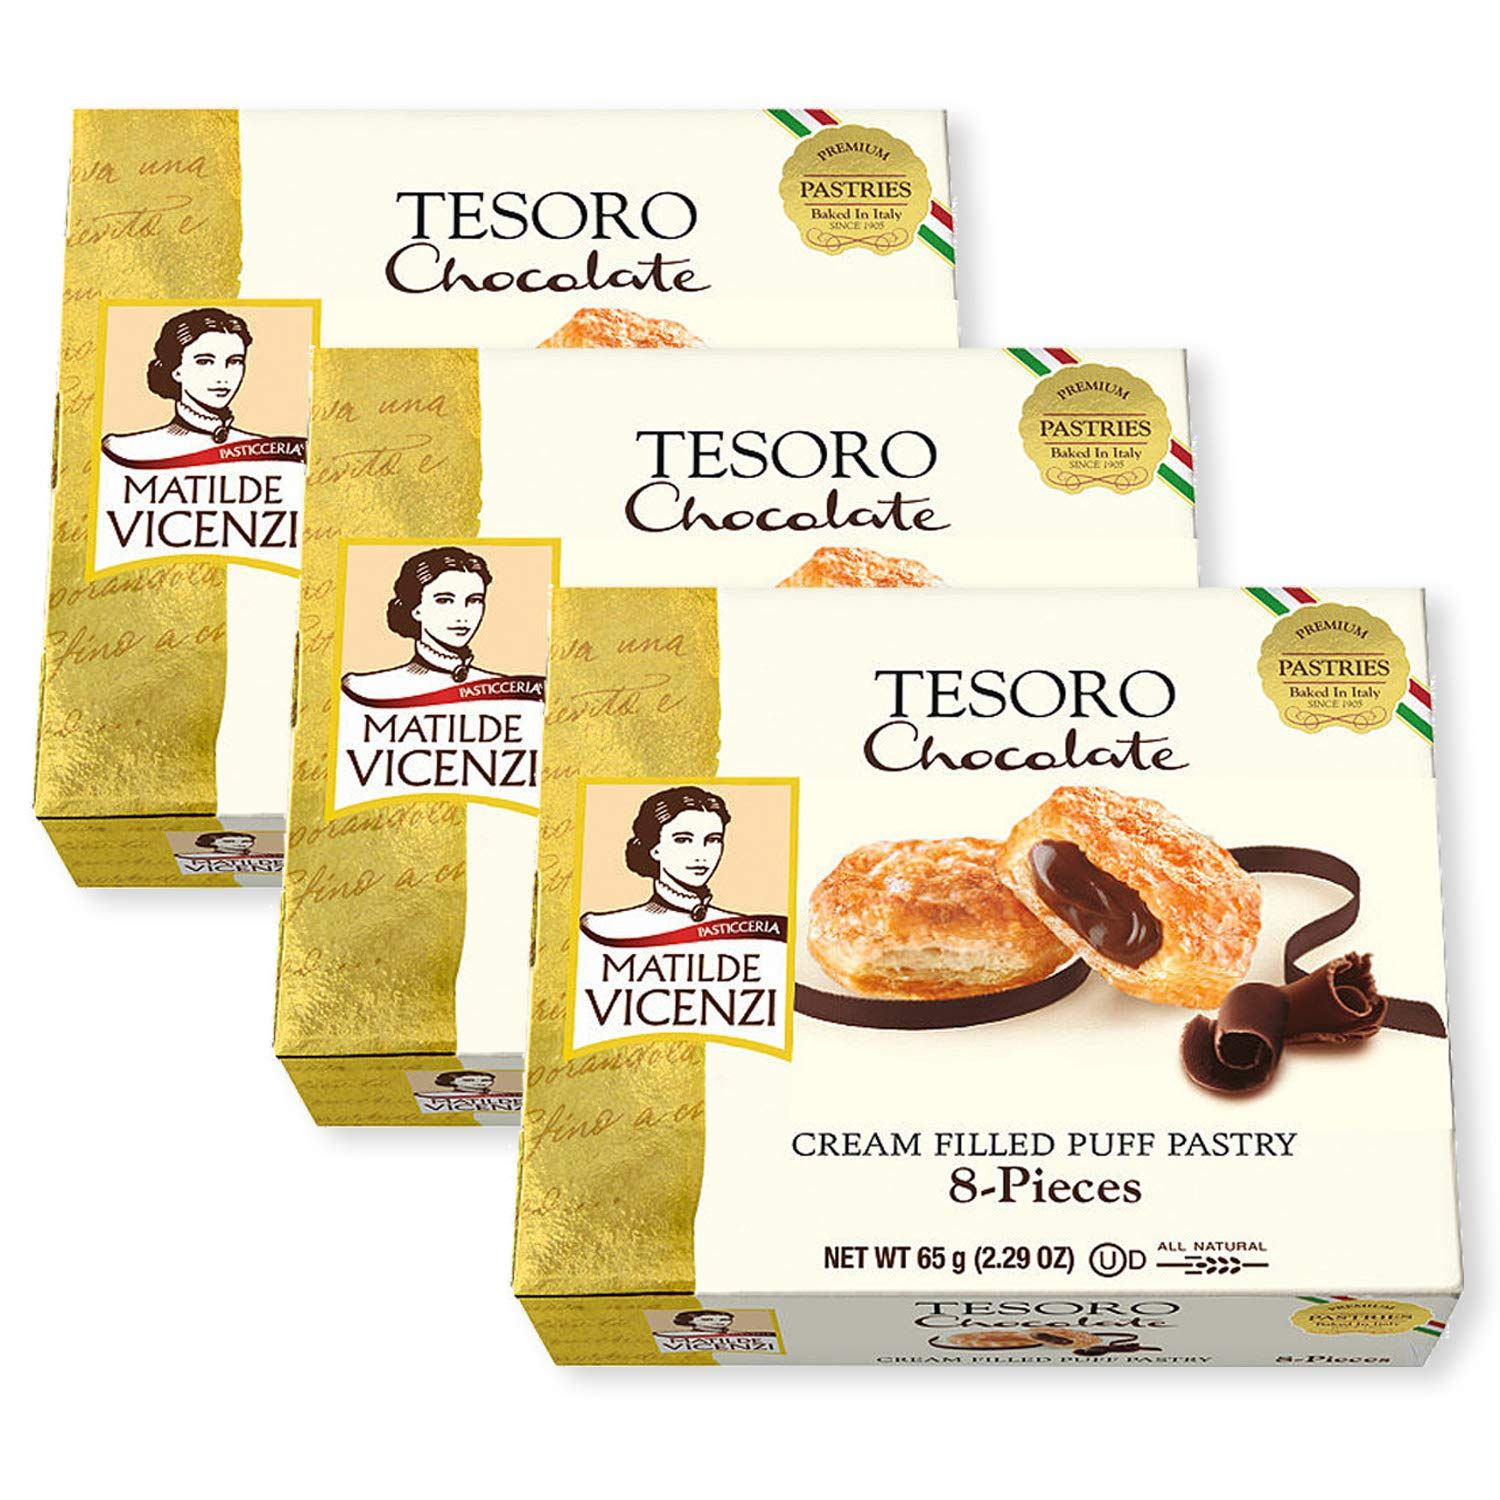 Tesoro Chocolate Cream by Matilde Vicenzi | Chocolate Cream Filled Puff Pastry Patisserie | All Natural, Dairy, Kosher | Made in Italy | 2.29oz (65g) Box of 8 Pastries, 3-Pack